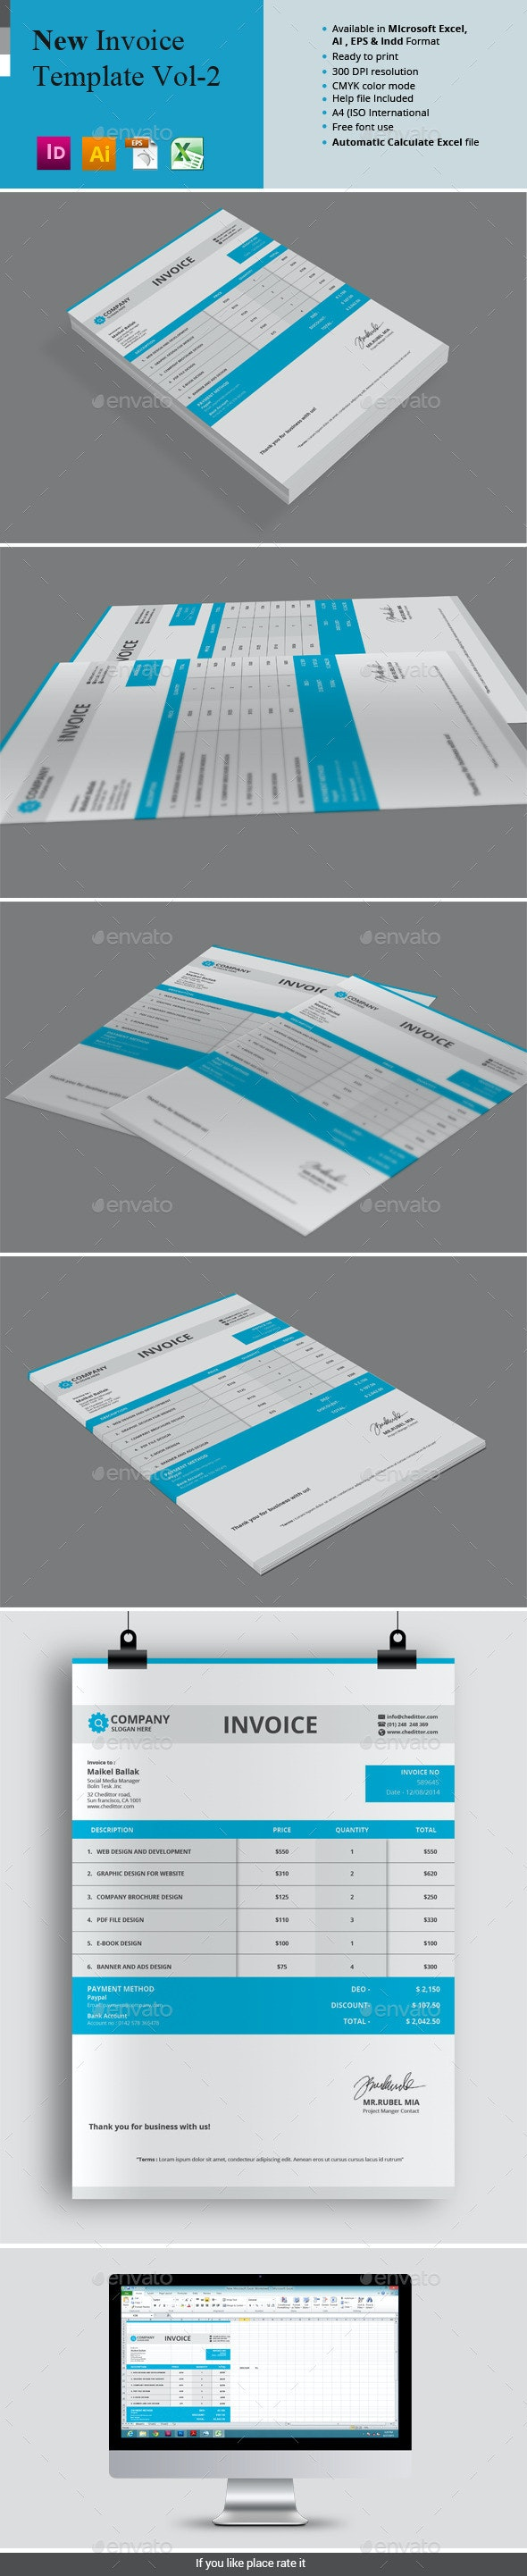 New Invoice Template Vol-2 - Proposals & Invoices Stationery